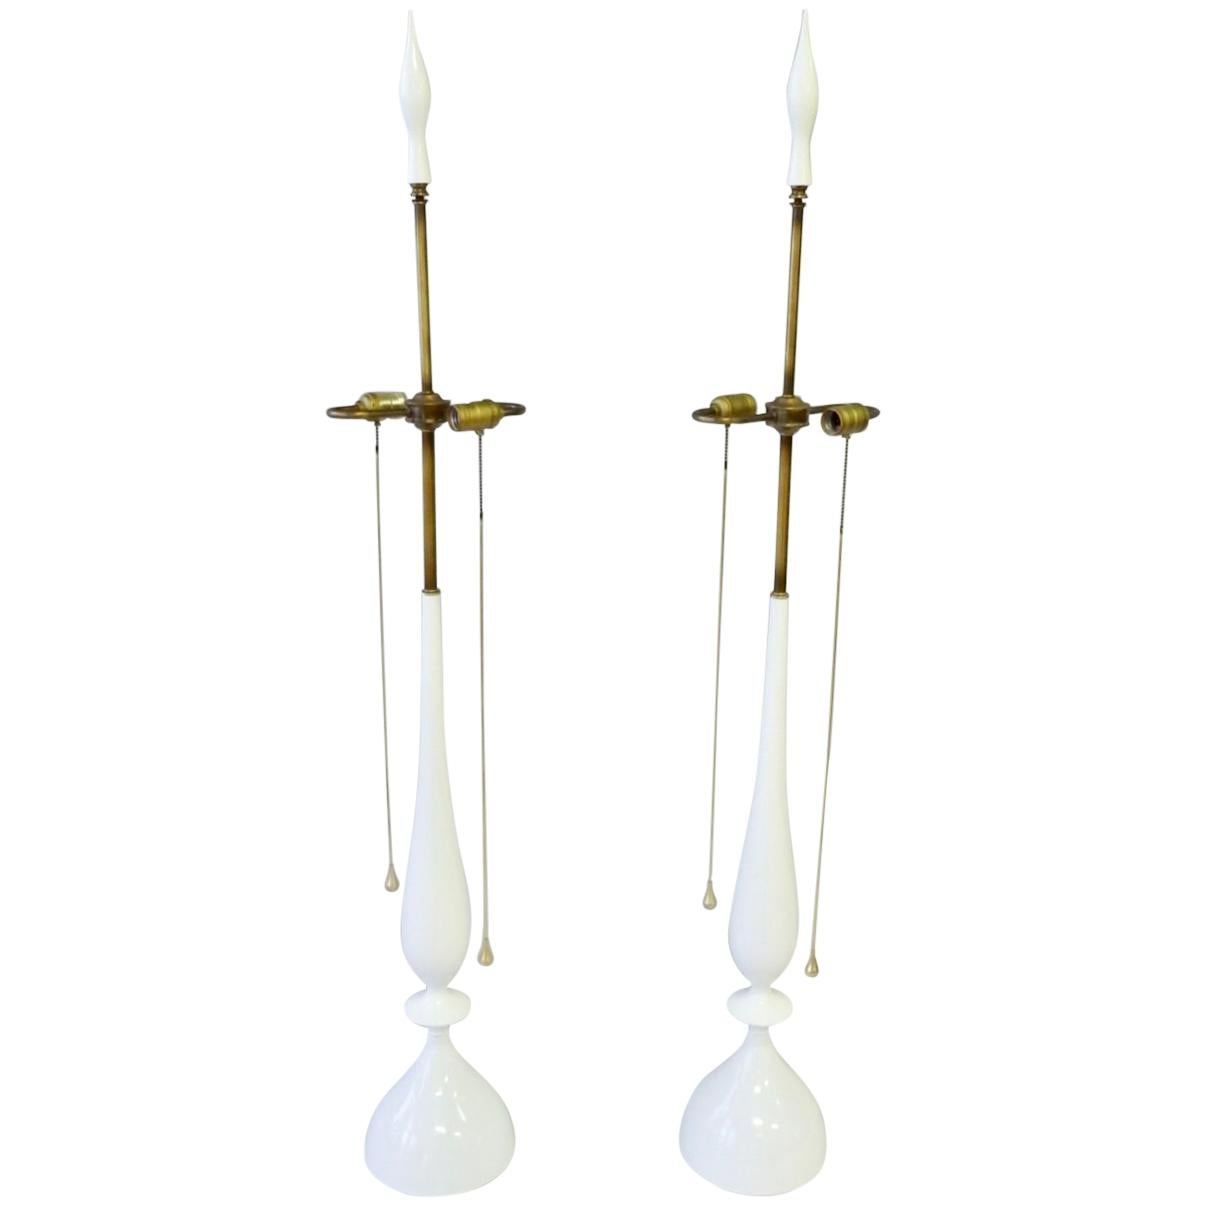 Tommi Parzinger Style White Lacquer with Brass Pull Rembrandt Table Lamps, Pair